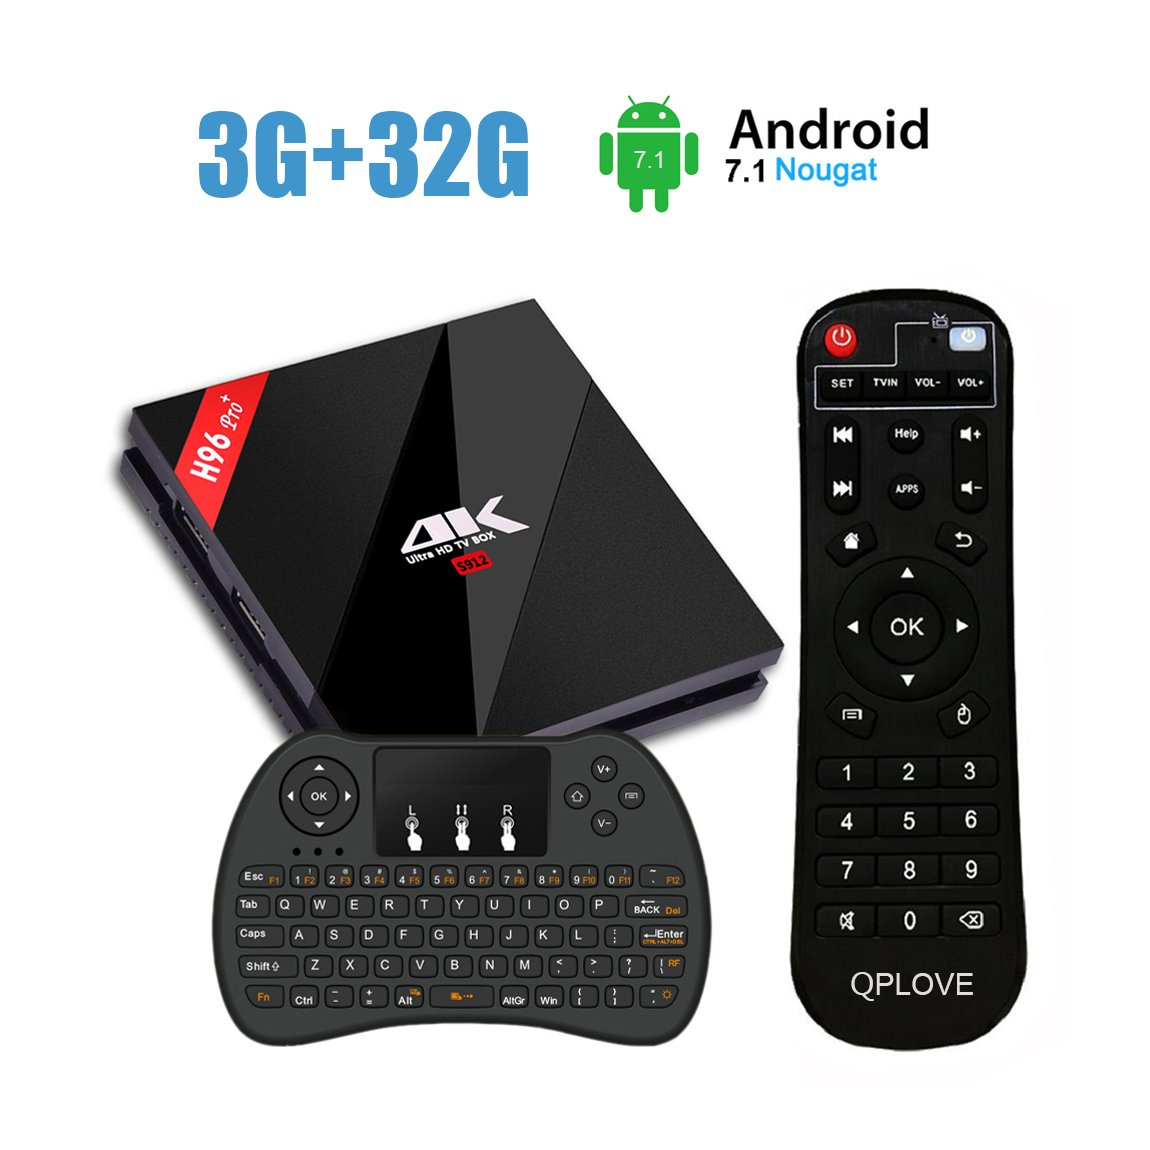 H96 Pro+ TV Box Android 7.1 OS 3G DDR3 32G EMMC Smart TV Box 4K HD Amlogic S912 Octa-core BT4.1 Dual Band 2.4G/5.8G WIFI Ethernet 1000M with Wireless Keyboard by QPLOVE